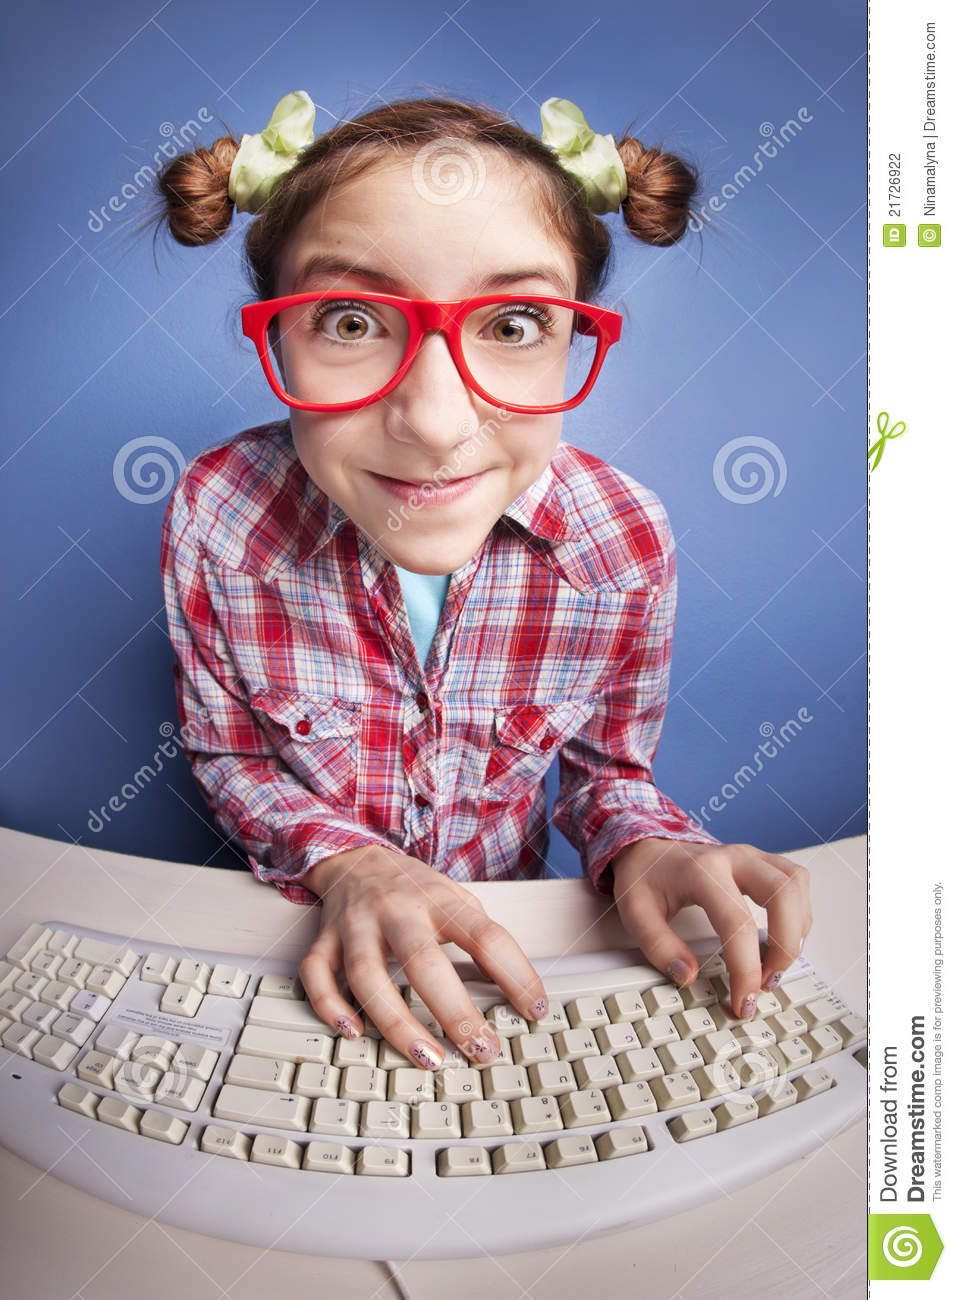 computer nerd stock photo image of emotion education